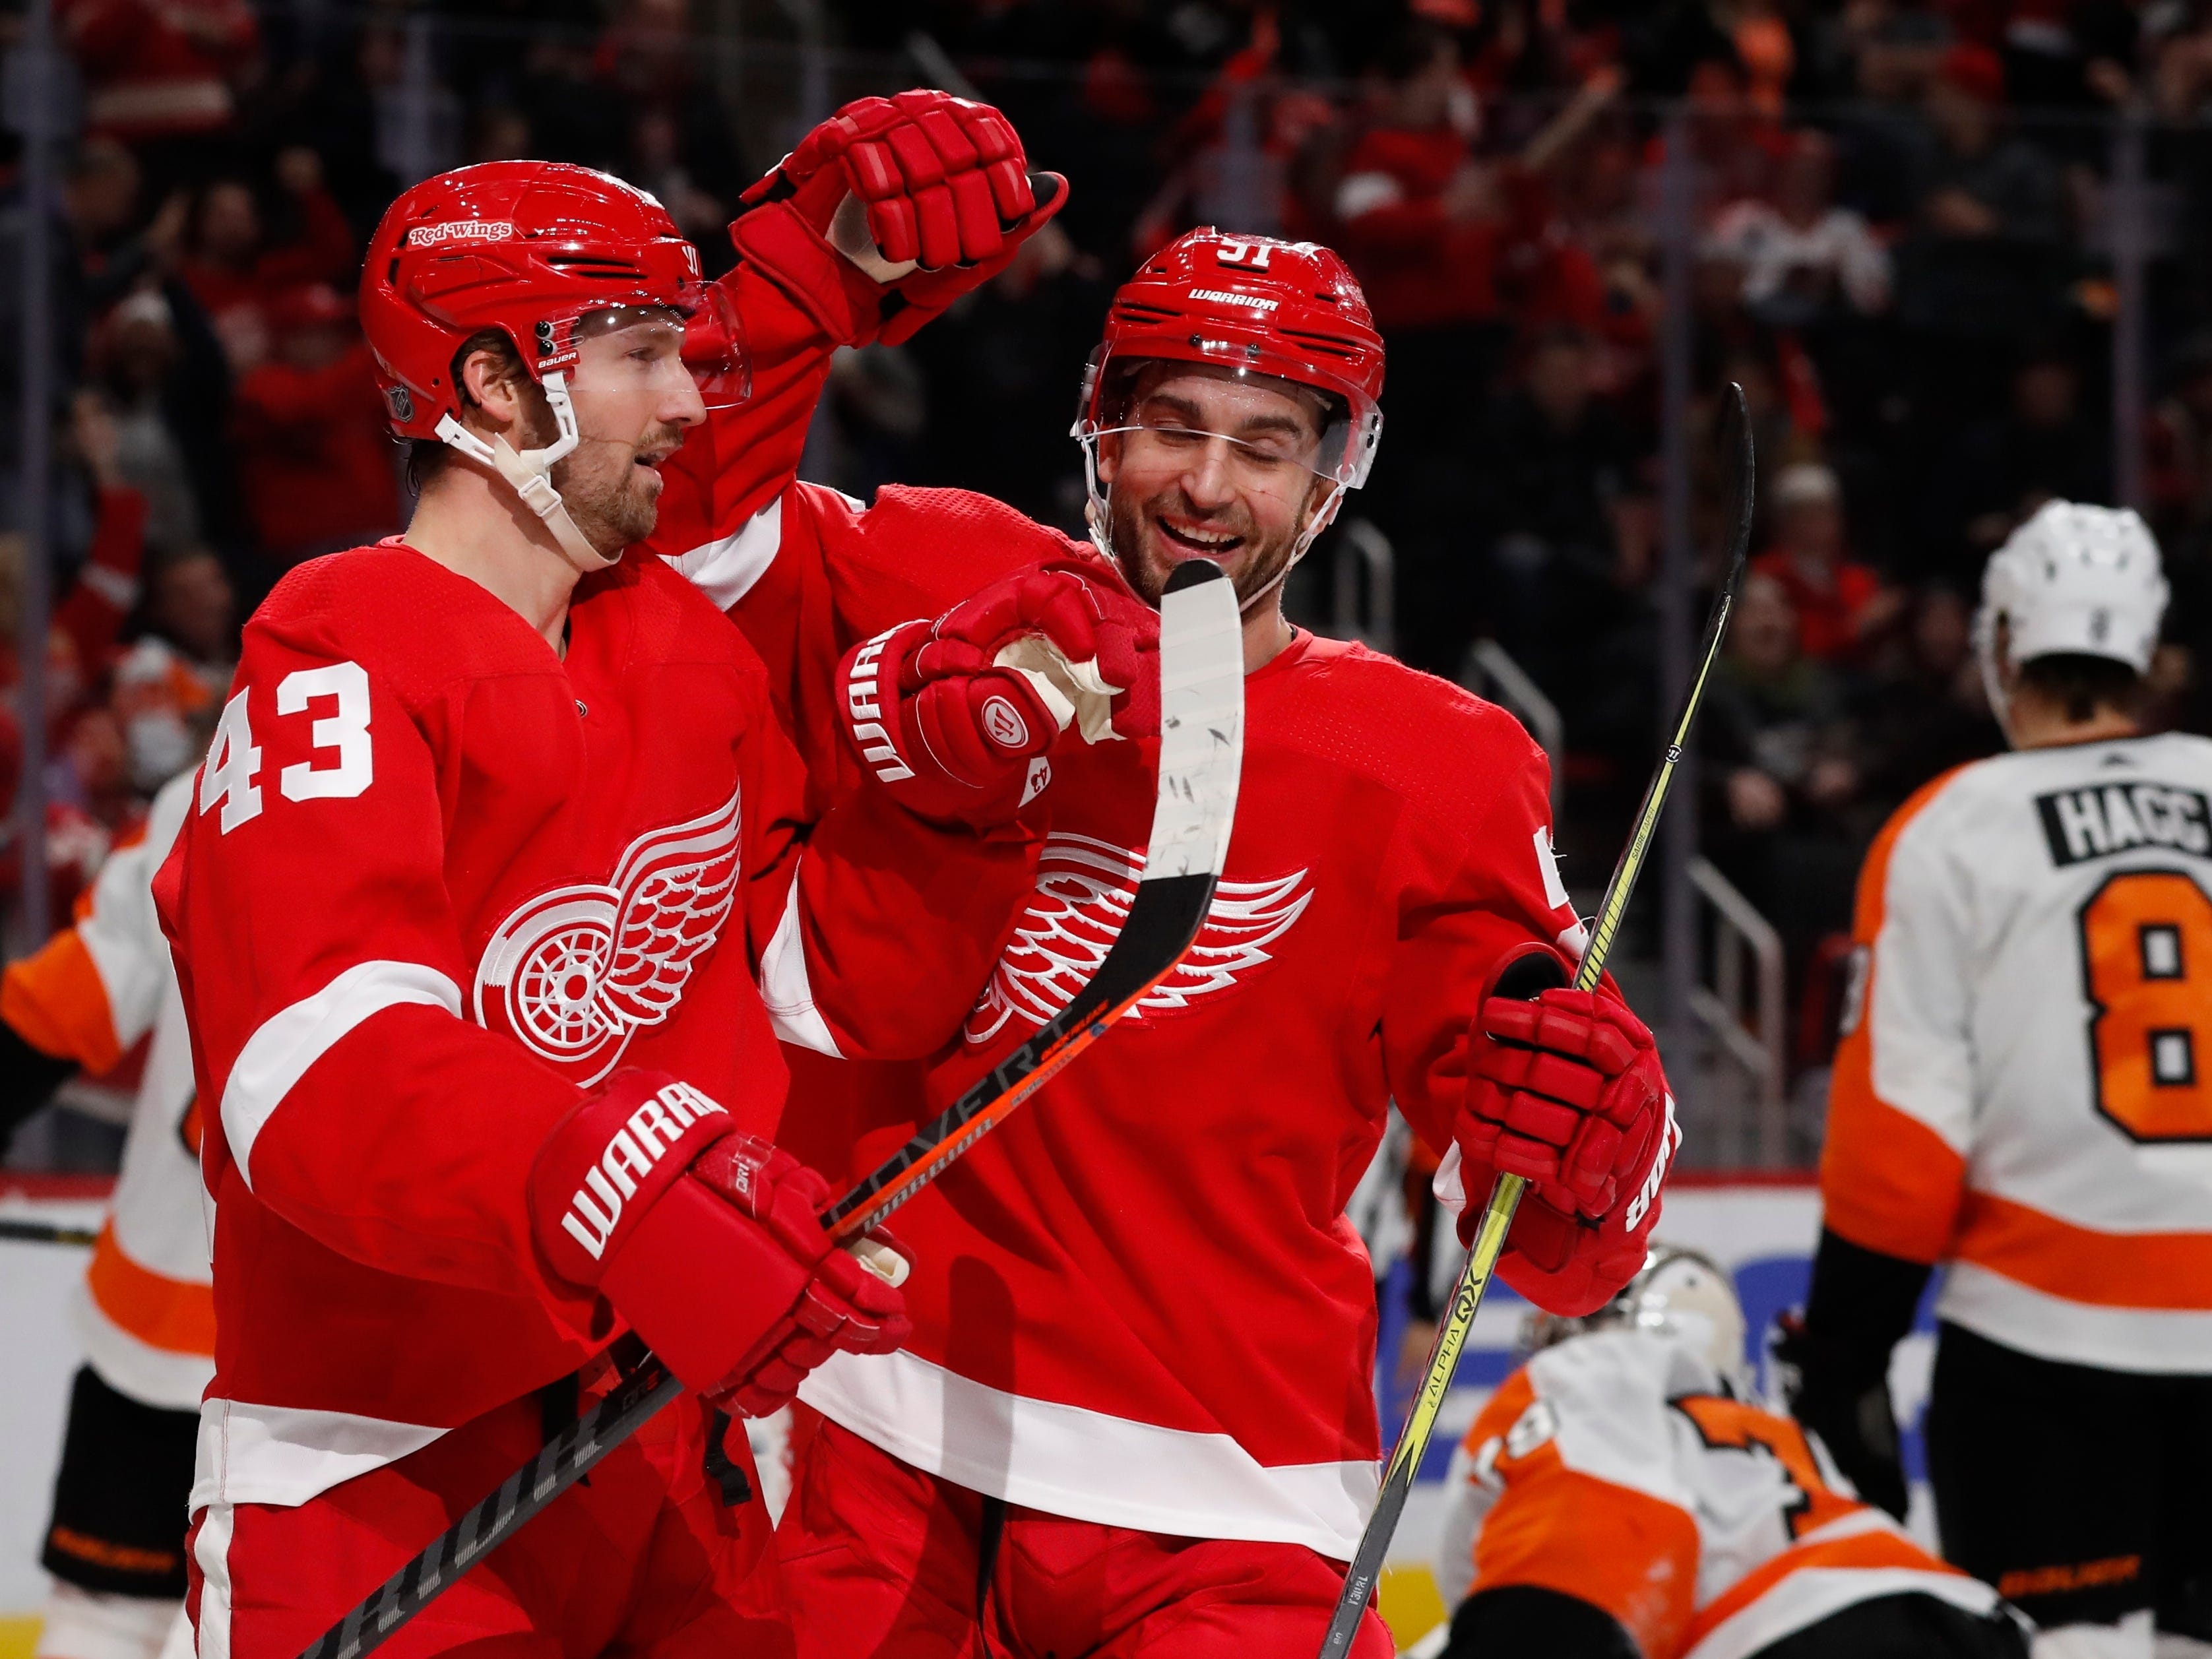 Red Wings forward Darren Helm (43) is congratulated on his goal by teammate center Frans Nielsen (51) during the second period against the Flyers on Feb. 17, 2019, in Detroit.